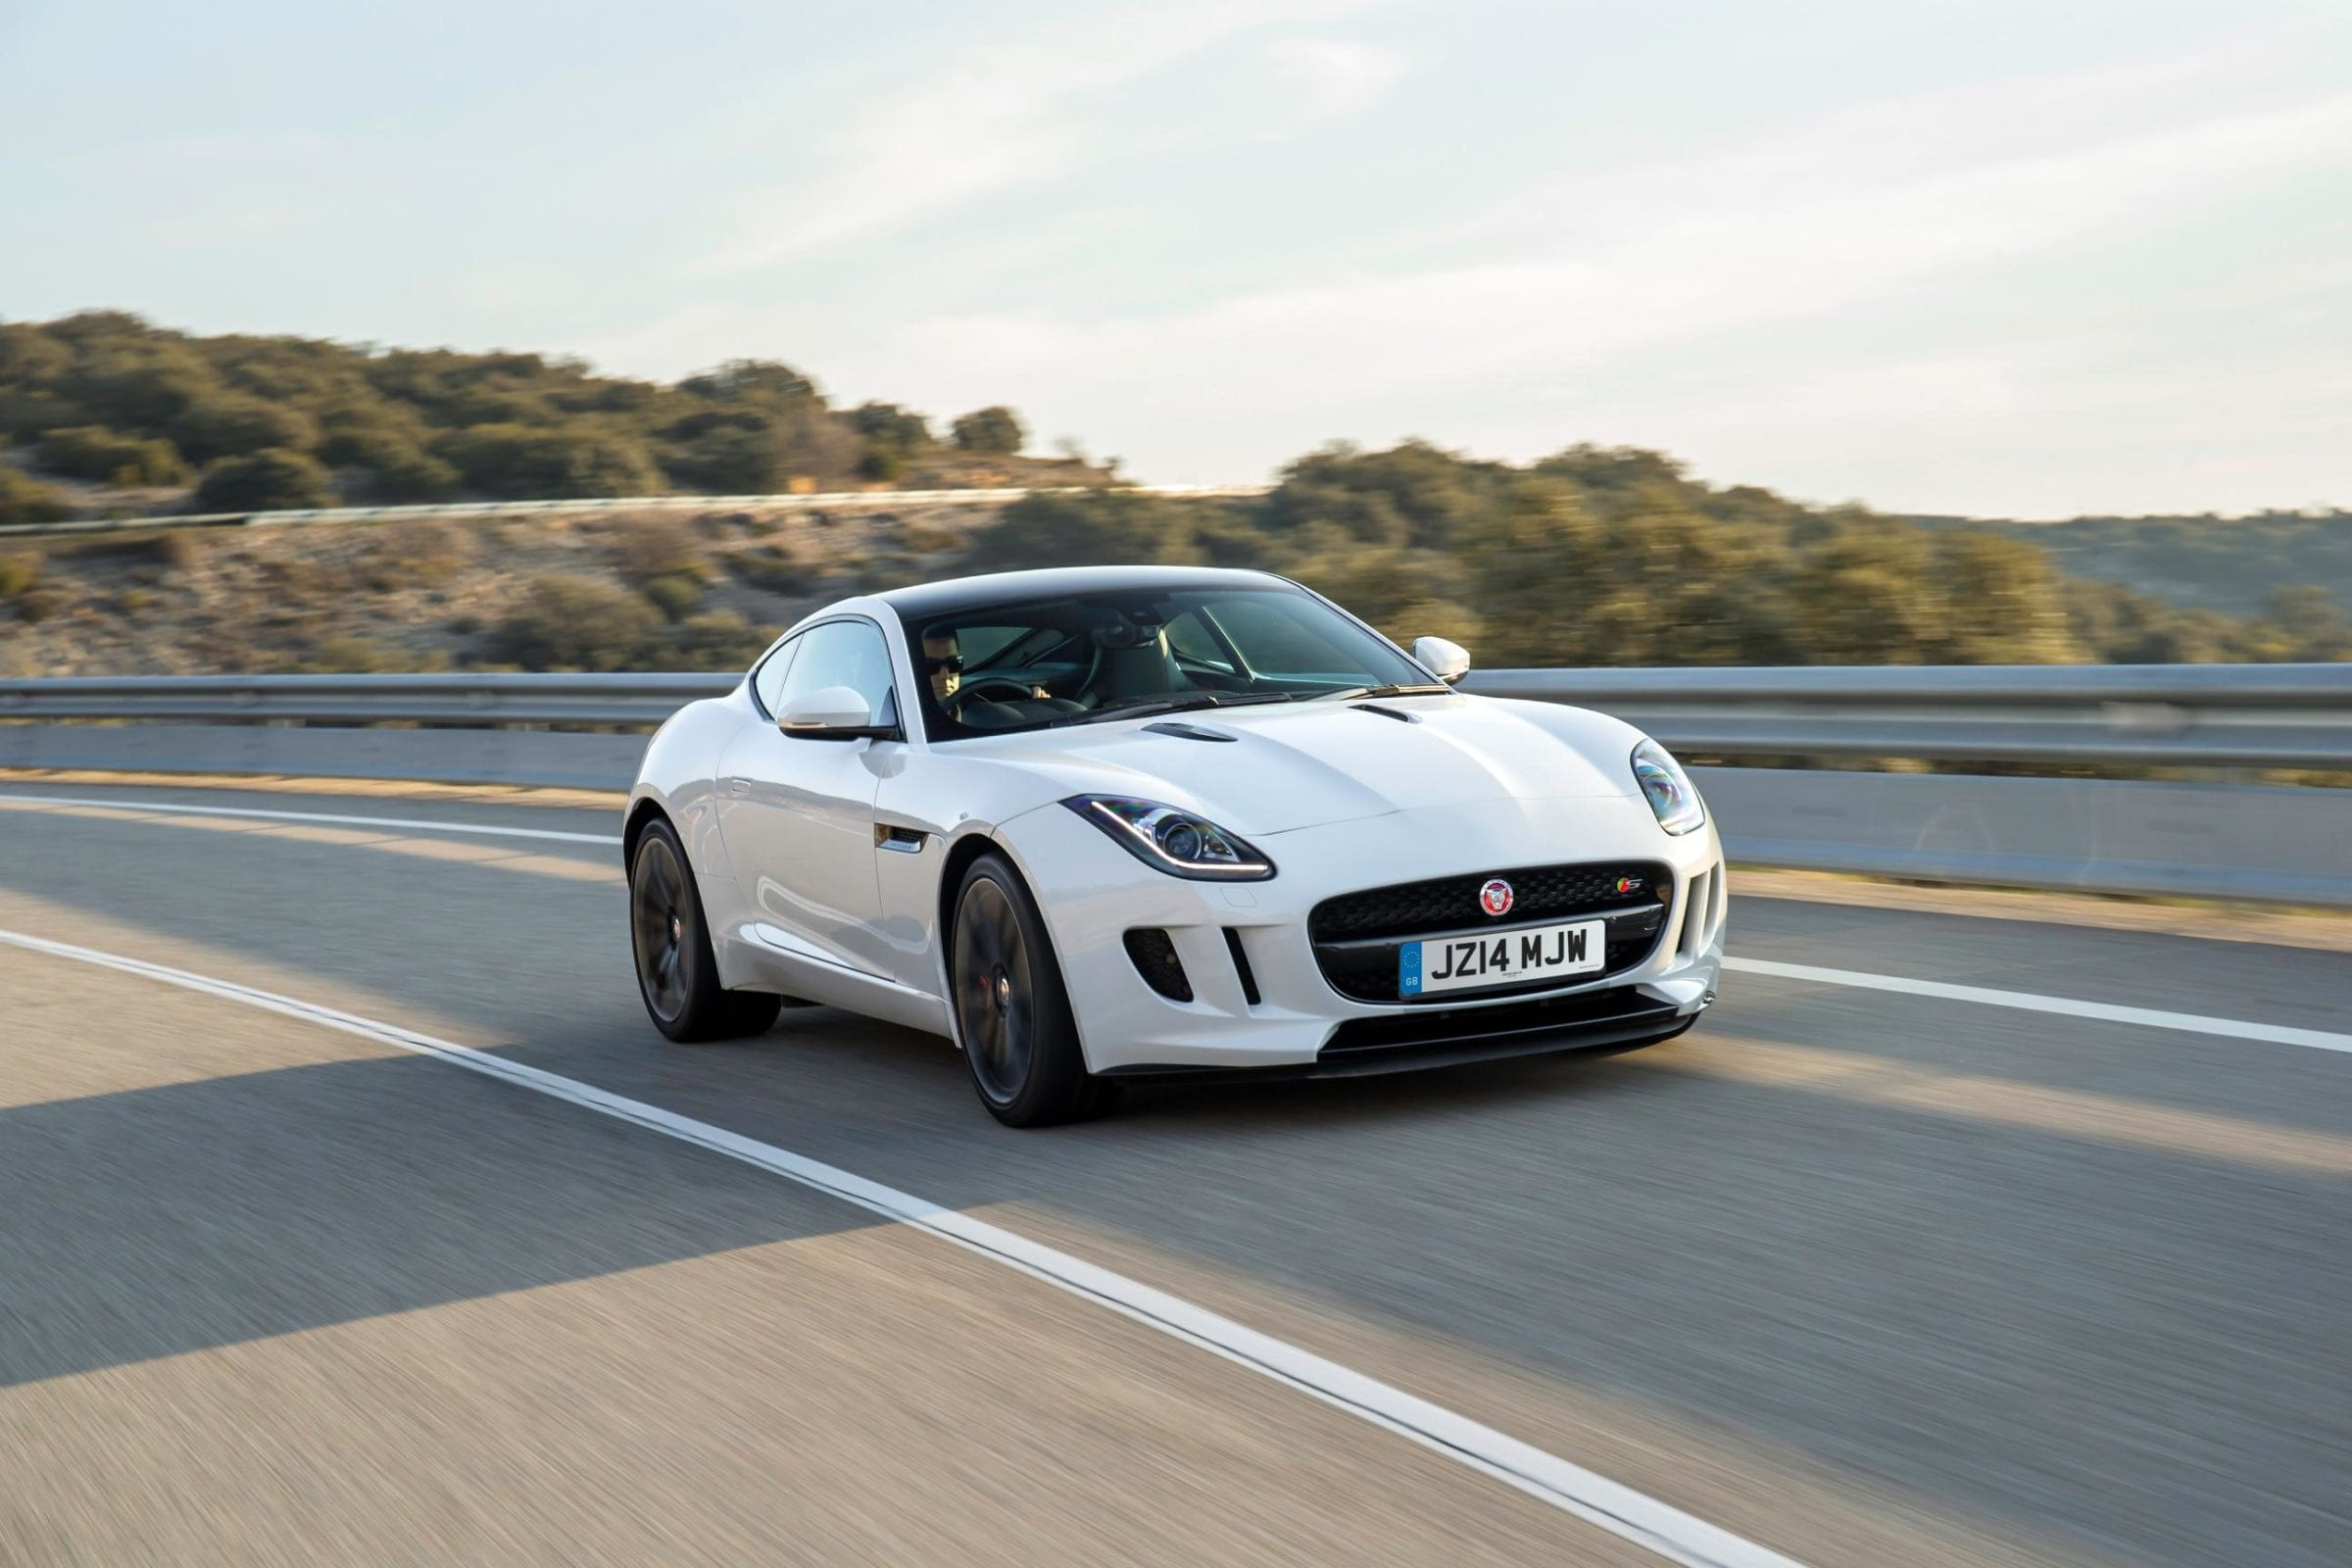 833994_JAG_F-TYPE_V6S_Polaris_White_001